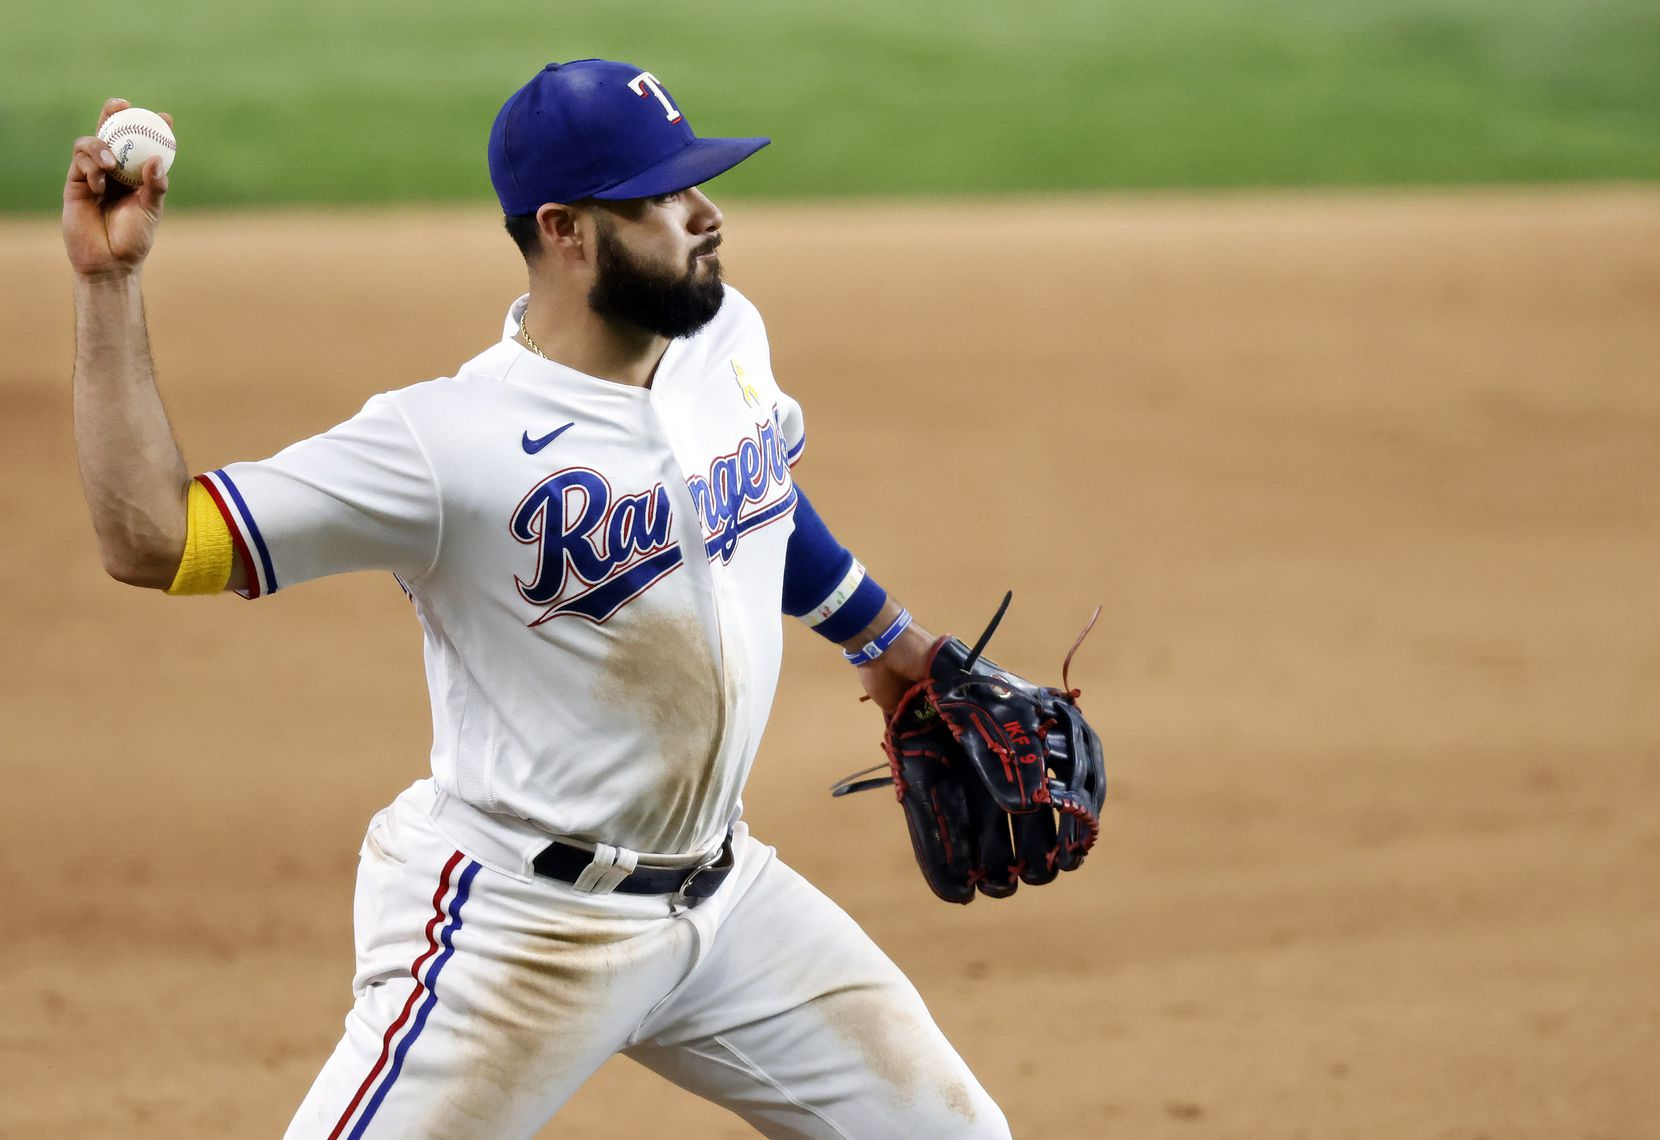 Texas Rangers Isiah Kiner-Falefa (9) fields a hit ball and throws to first during the ninth inning against the Colorado Rockies at Globe Life Park in Arlington, Texas Wednesday, September 1, 2021. (Tom Fox/The Dallas Morning News)